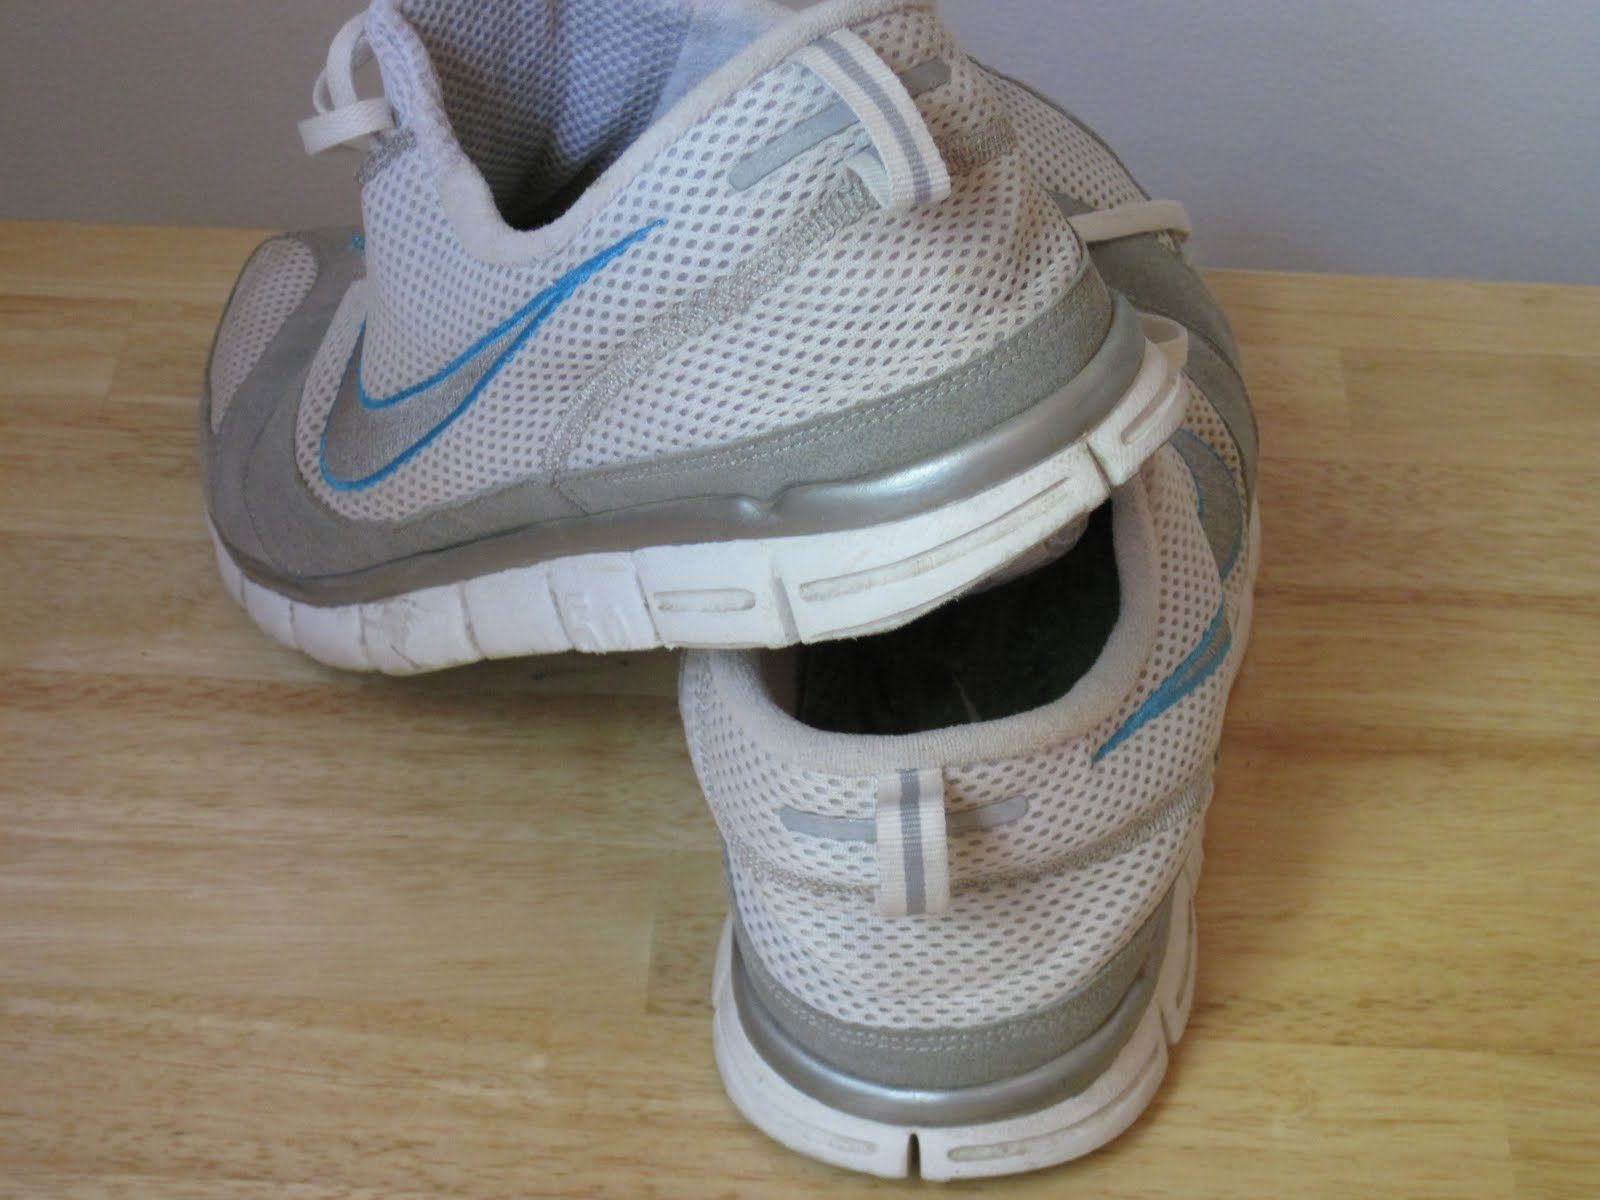 new style 3afea 1693a My Zero Drop Nike Free